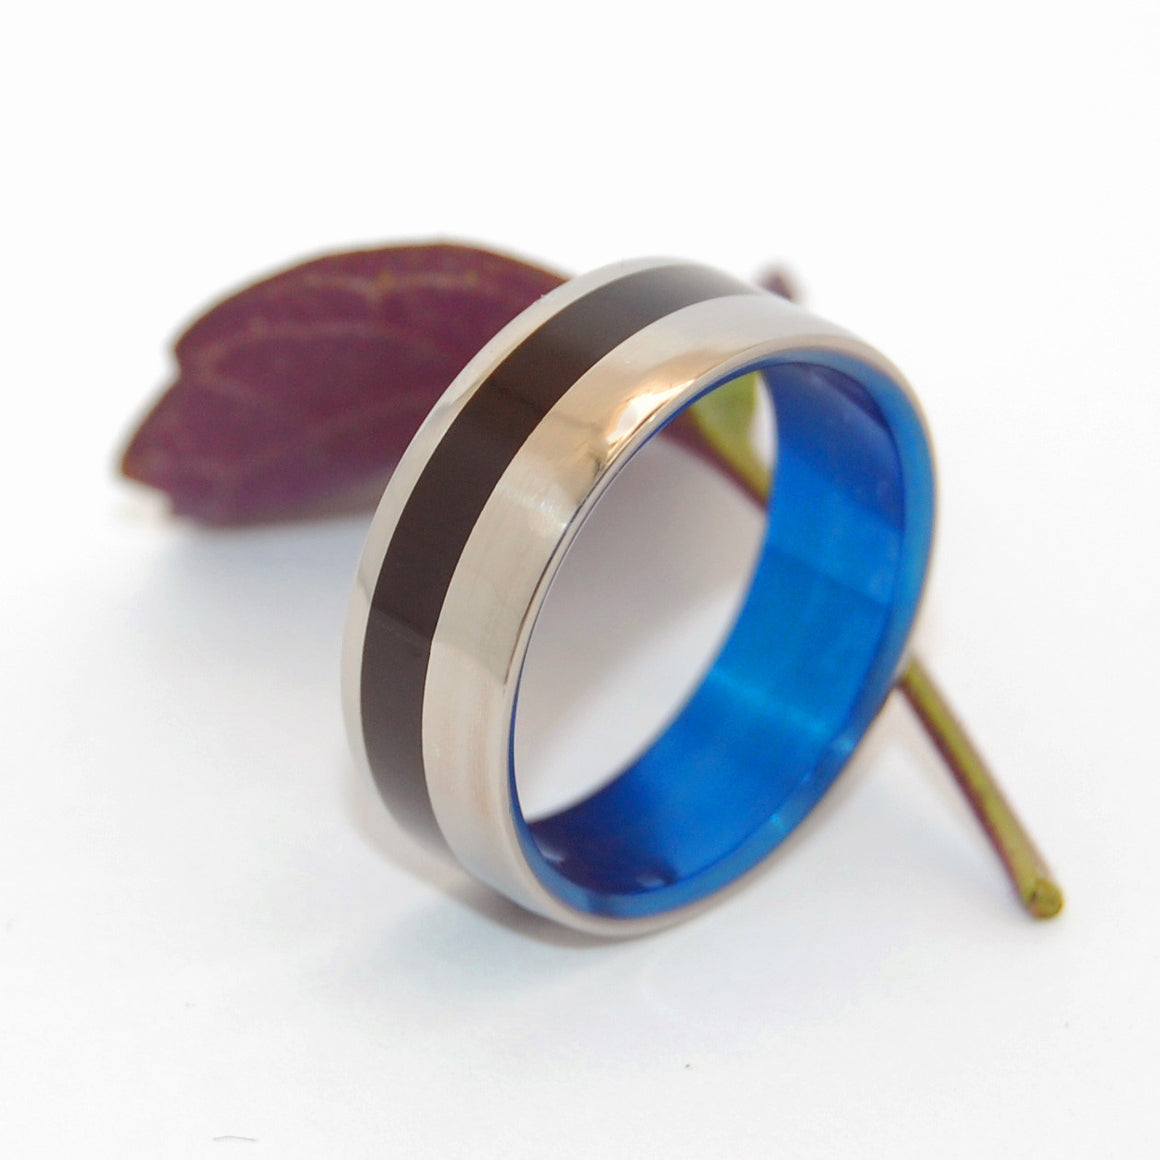 Beveled Heathcliff | Horn and Hand Anodized Titanium Wedding Ring - Minter and Richter Designs